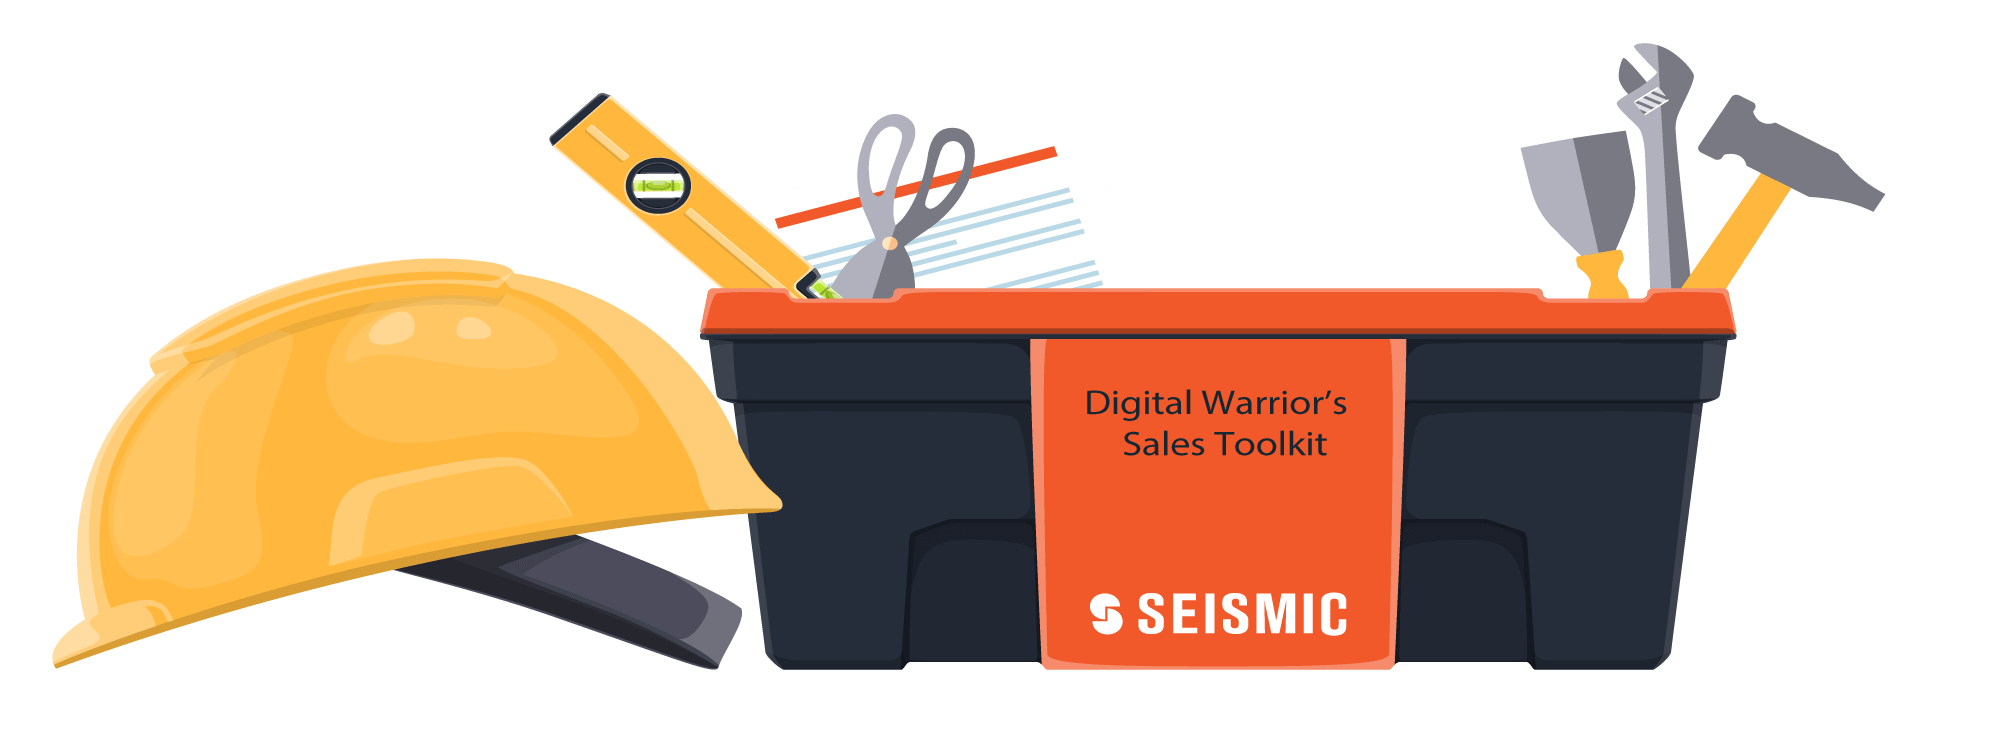 Seismic_digital_warrior_toolkit